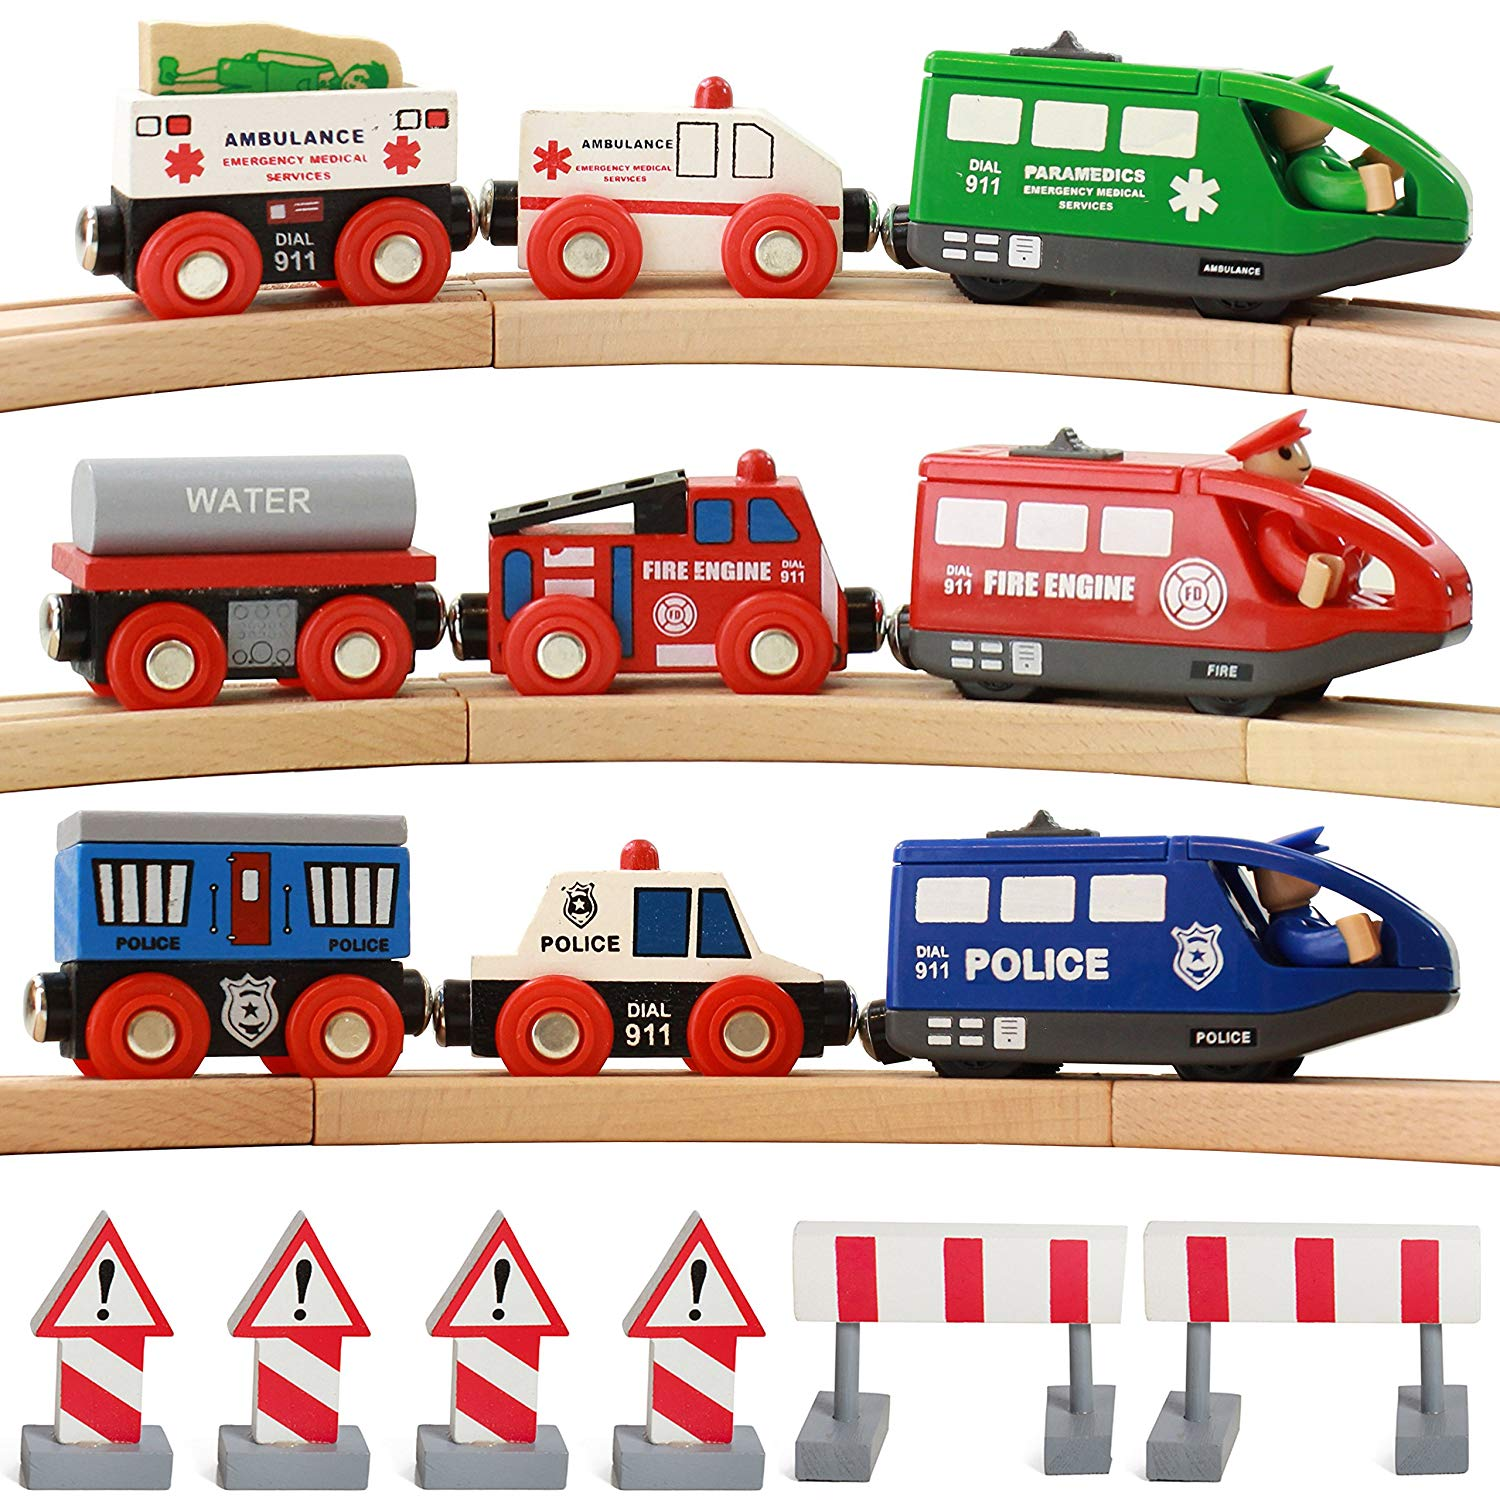 Free clipart of train cars going backwards down a hill image freeuse stock On Track USA Battery Operated Action Rescue Trains, Includes 3 Motorized  Engines and 6 Cars, Compatible for Wooden Tracks from All Major Brands ... image freeuse stock